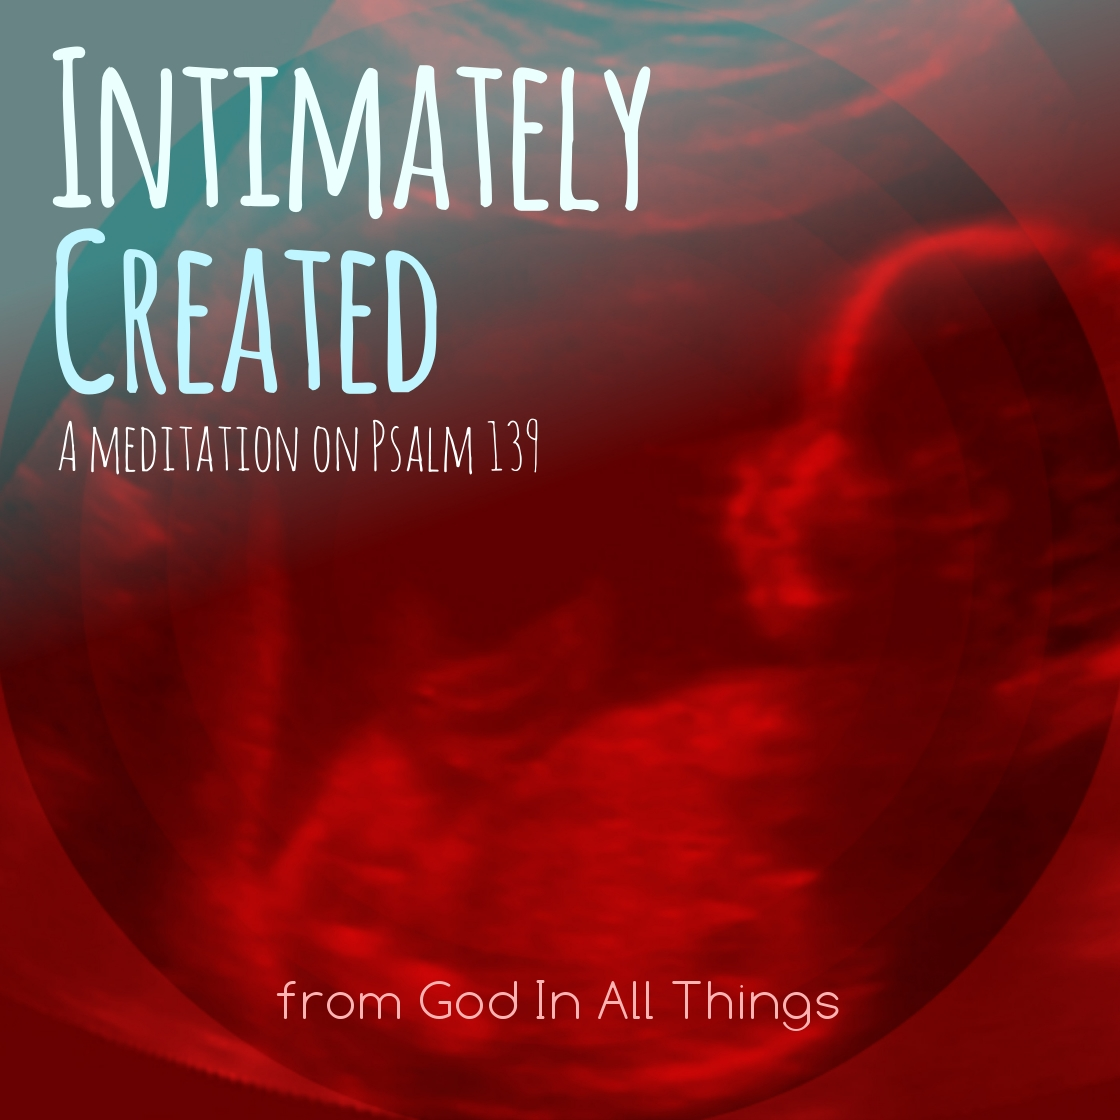 Intimately Created – A Meditation on Psalm 139